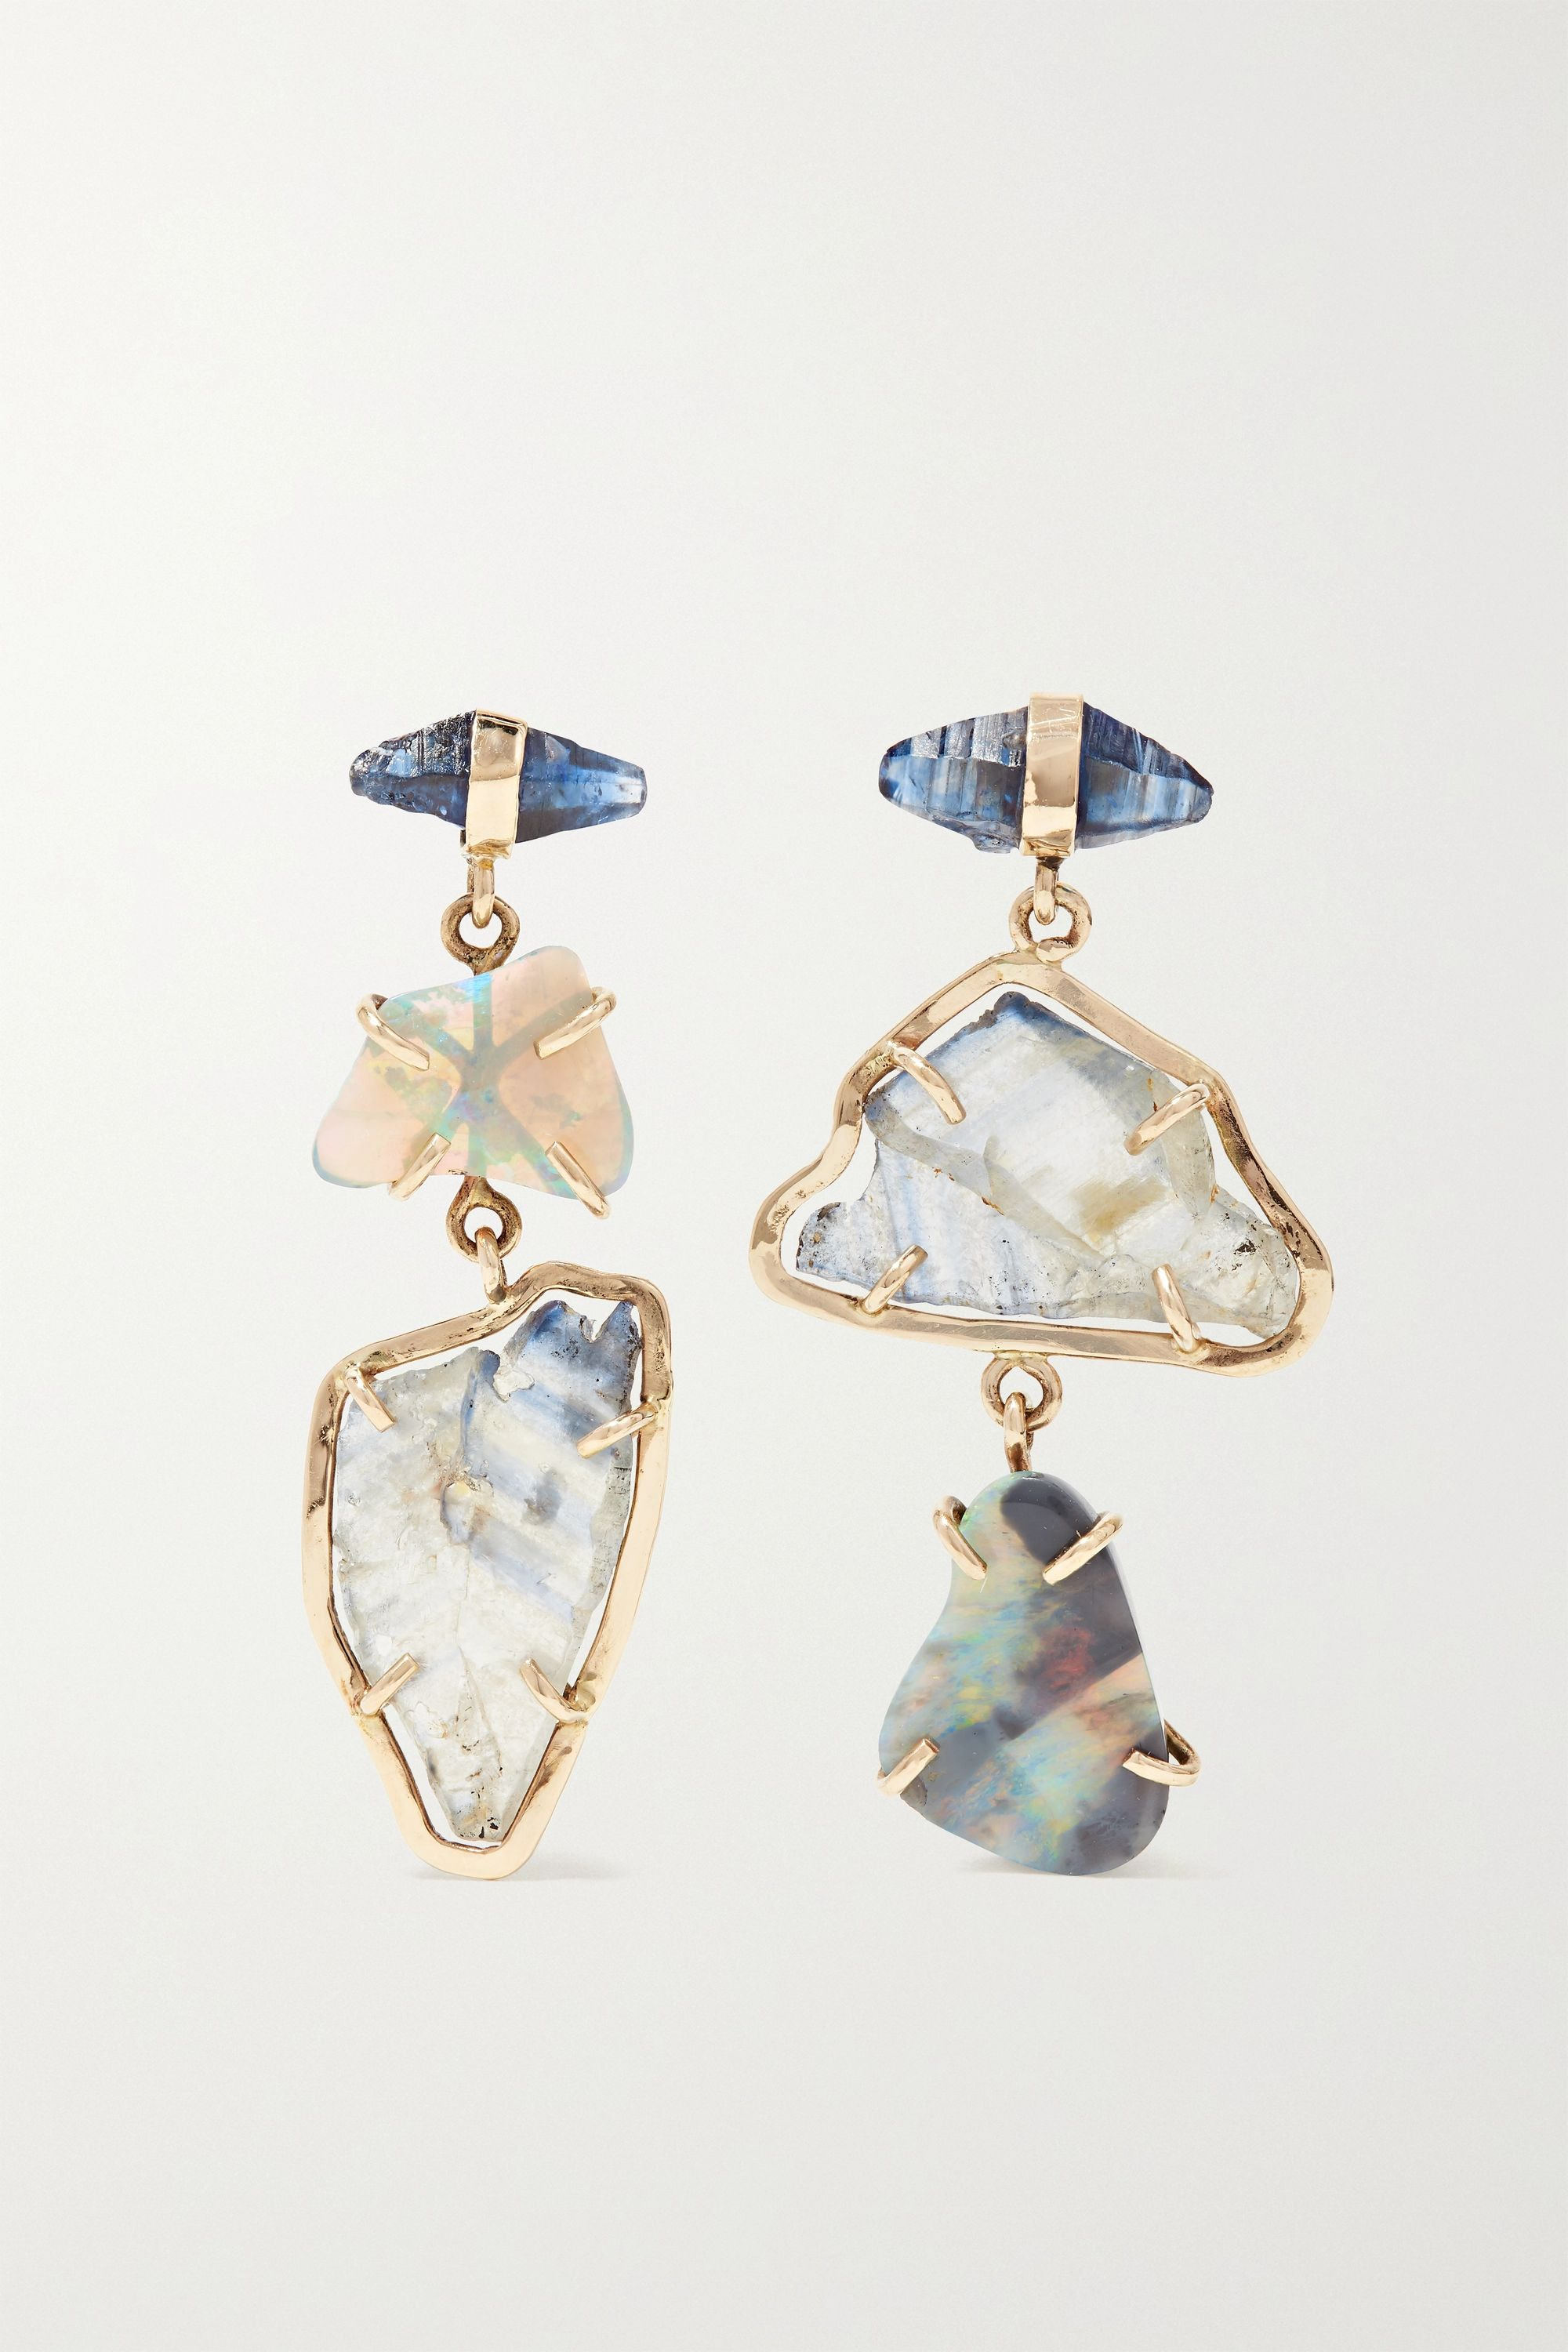 Melissa Joy Manning 14-karat gold, sapphire and opal earrings